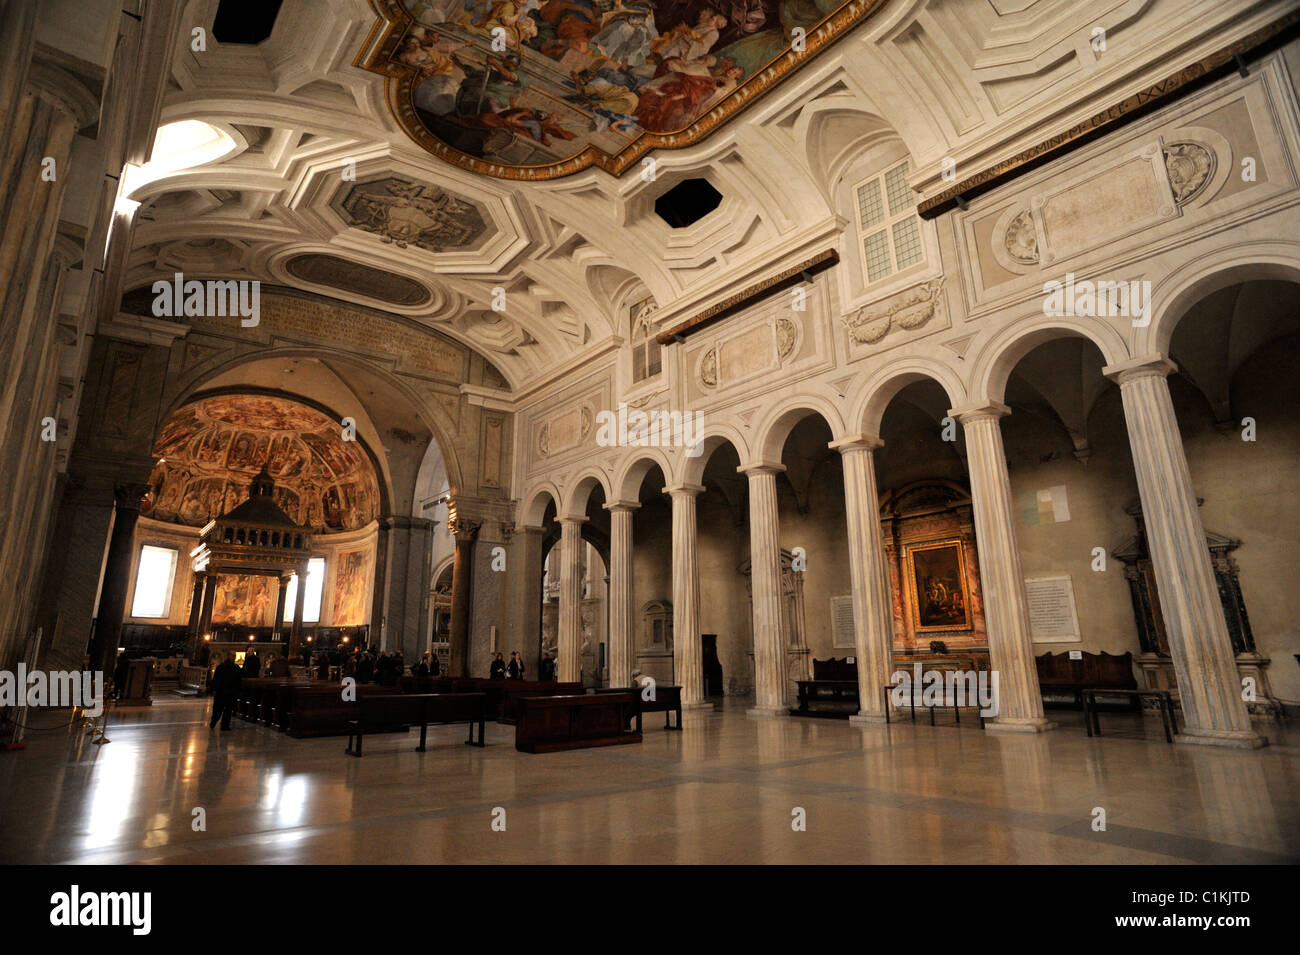 Italy, Rome, basilica of San Pietro in Vincoli (St. Peter in Chains) Stock Photo